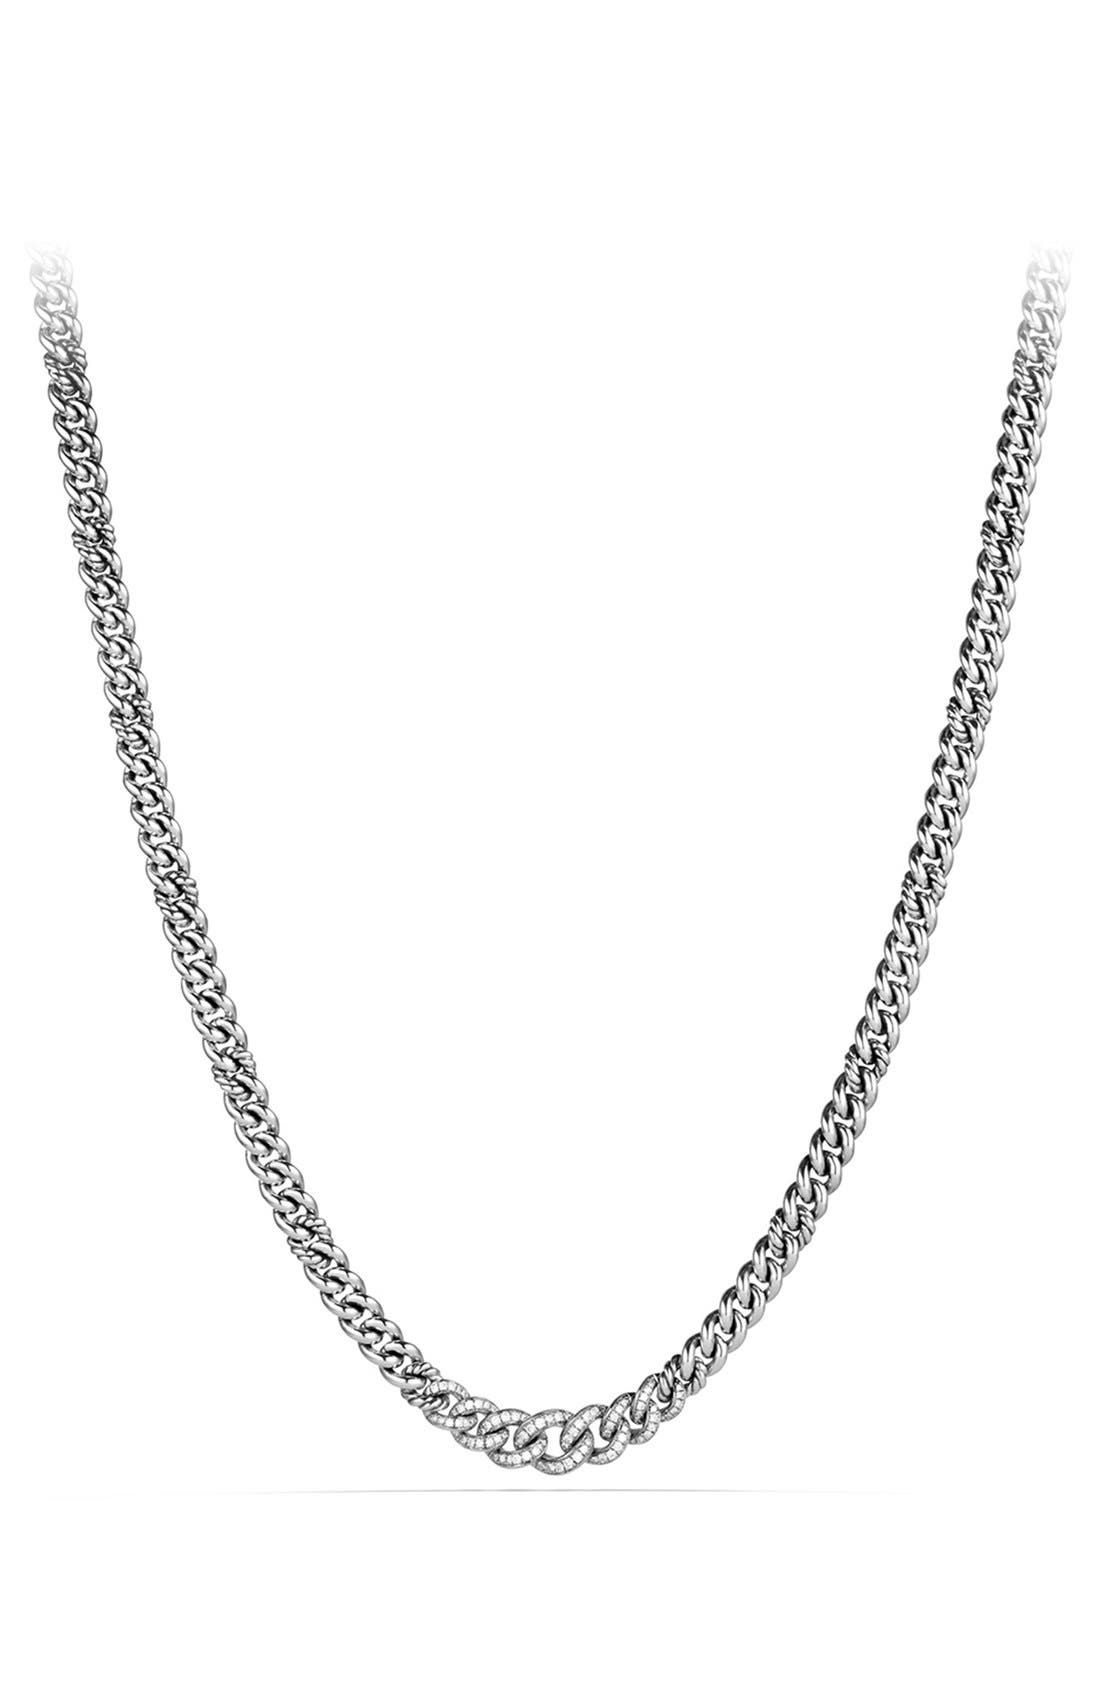 Main Image - David Yurman 'Petite Pavé' Curb Chain Necklace with Diamonds